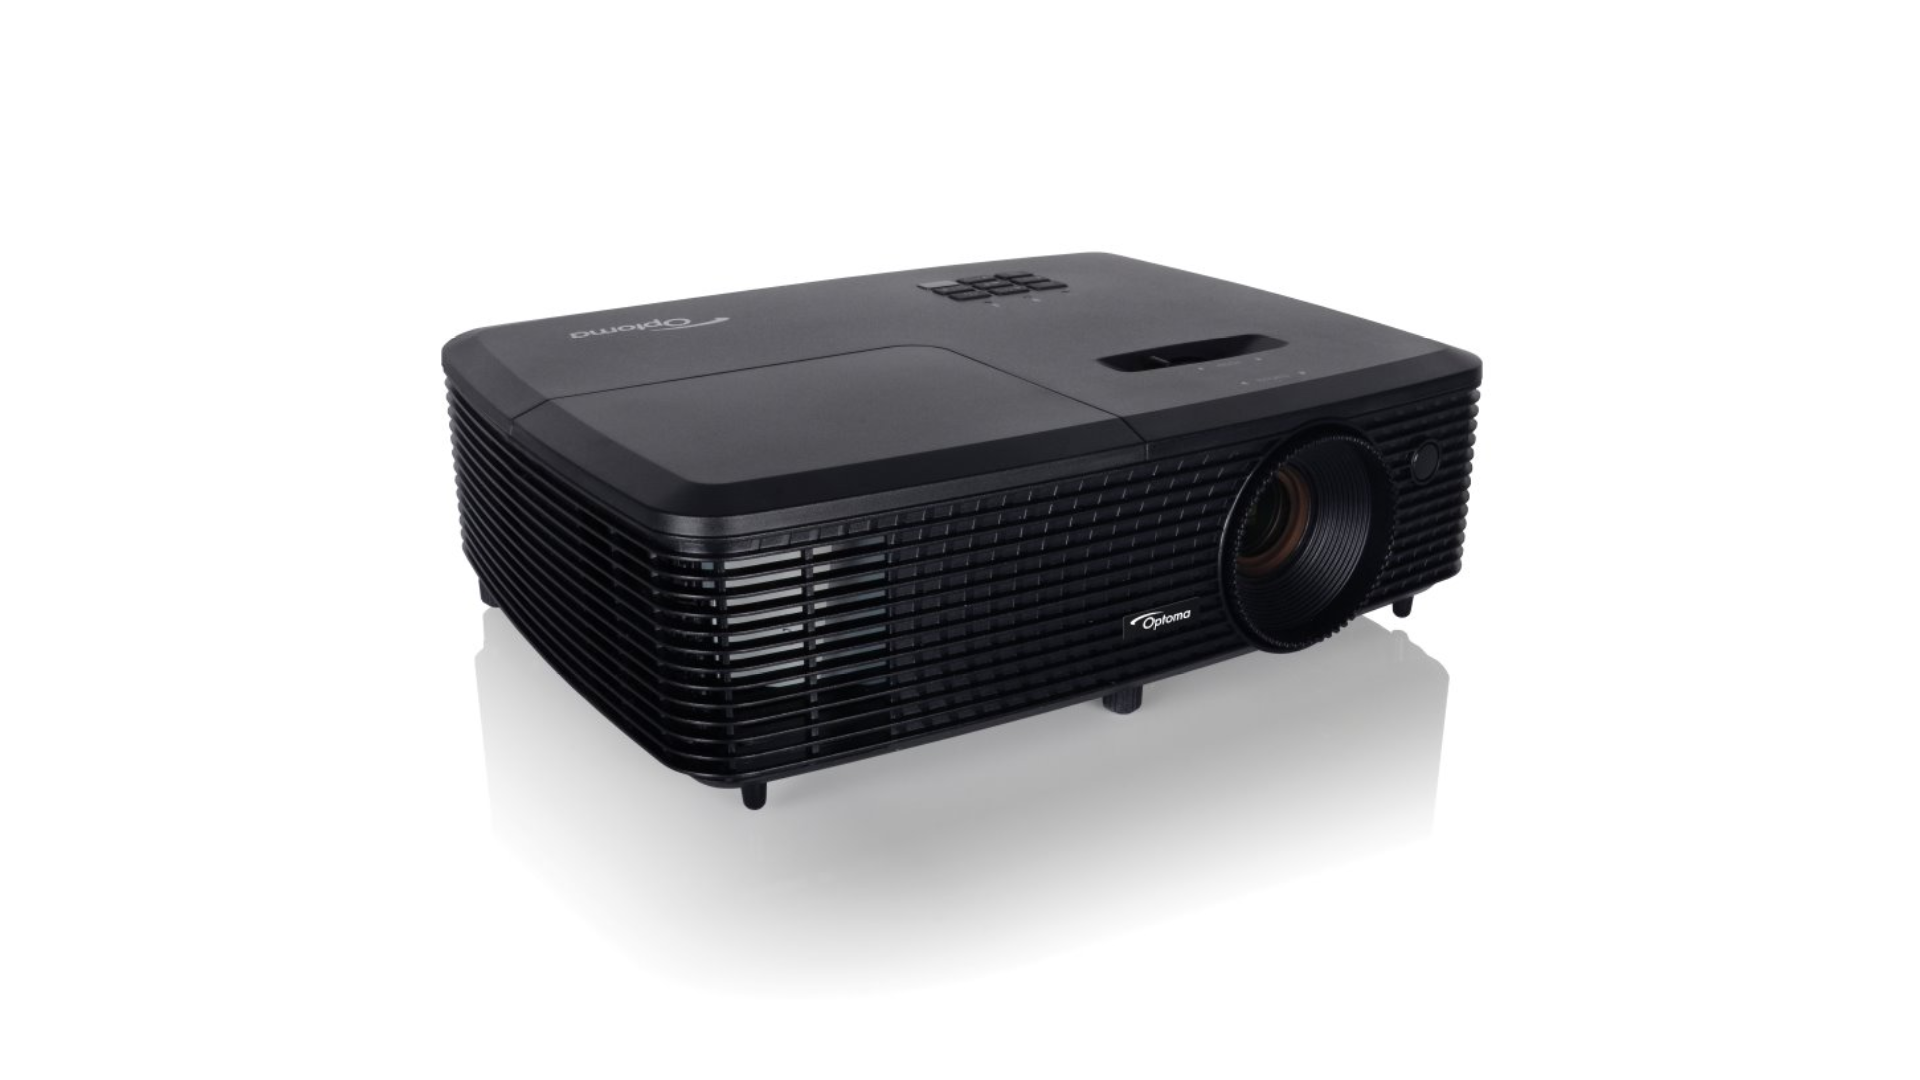 Optoma X340 - 3100 Lumens 1024 x 768 (XGA) Resolution Optoma Projector